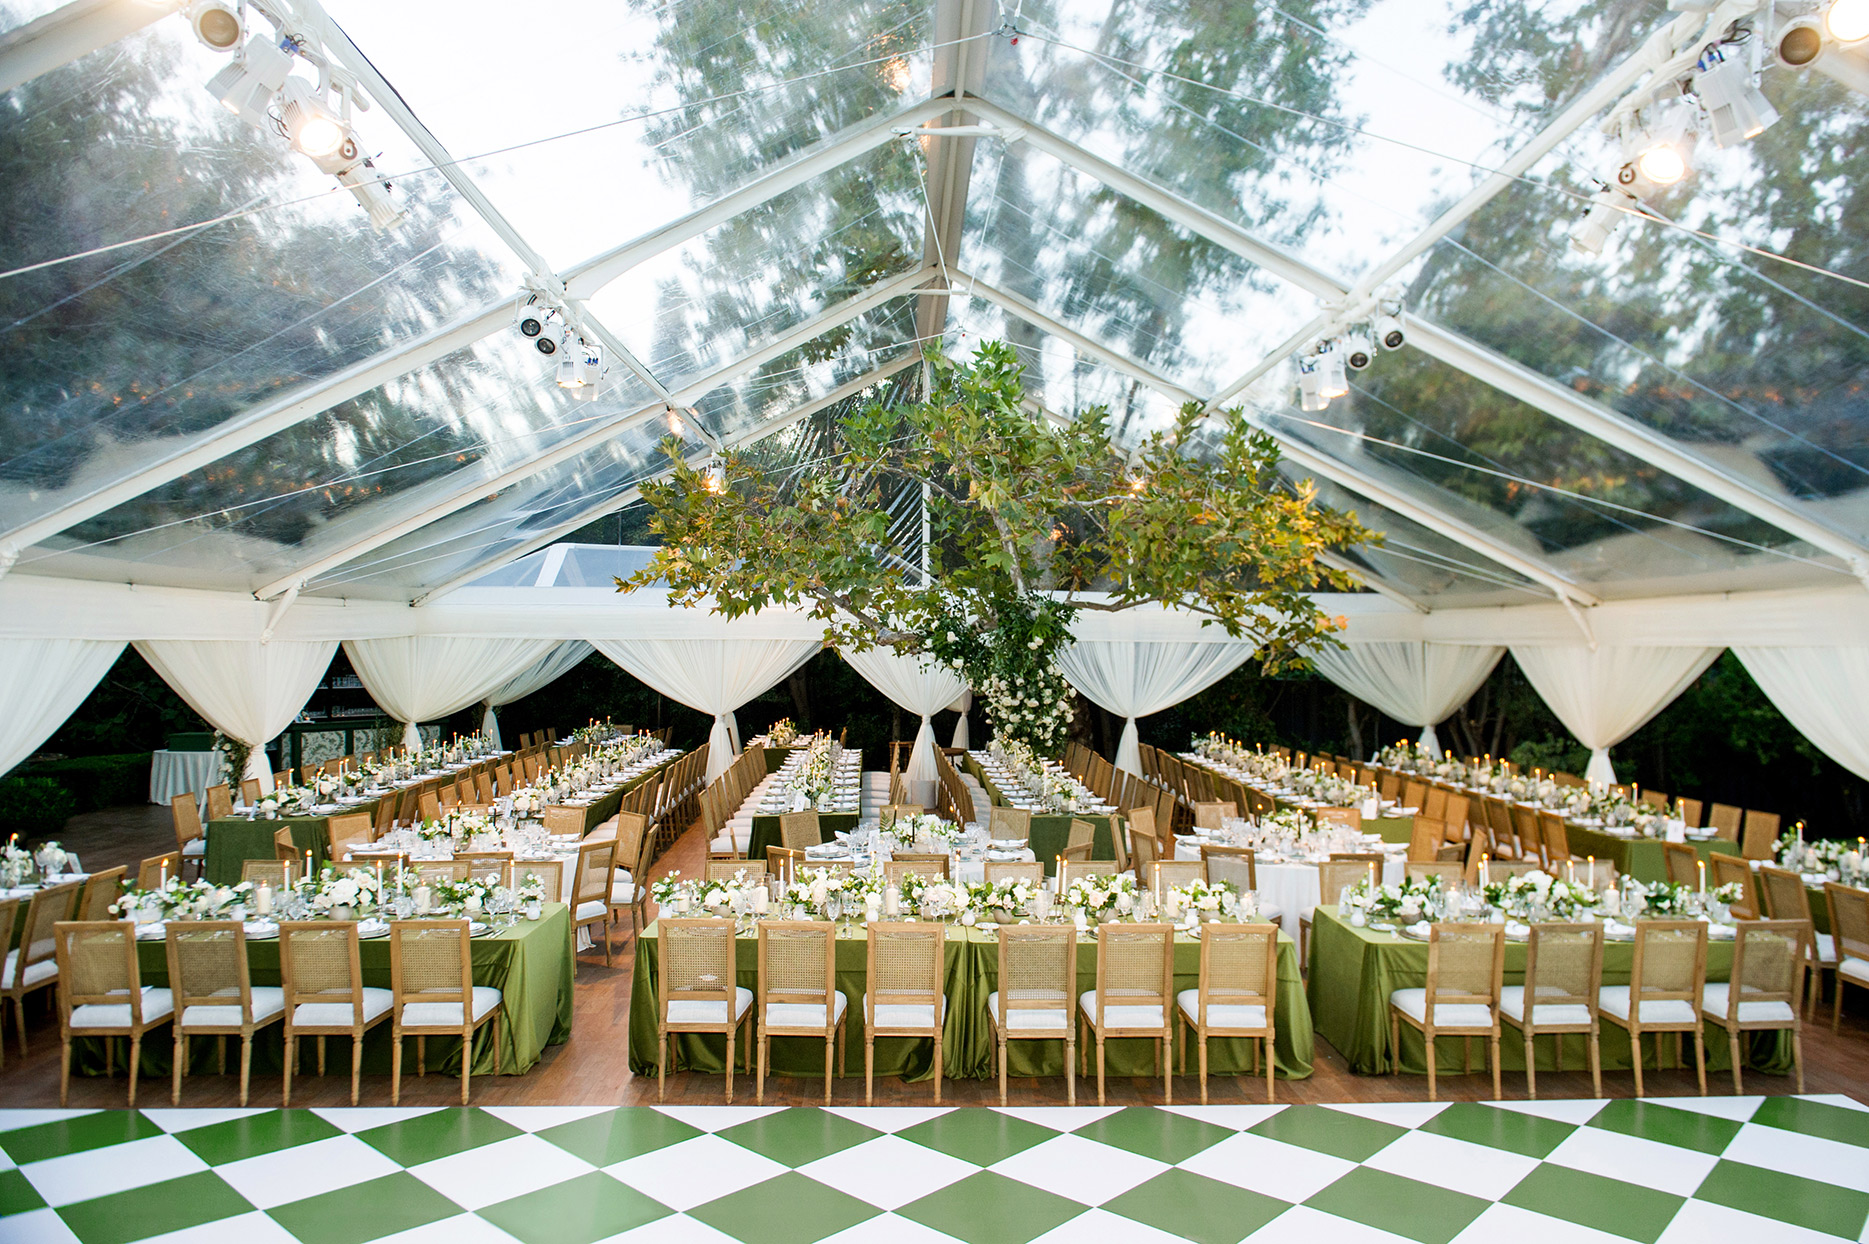 wedding transparent tent with white and green tables set up inside